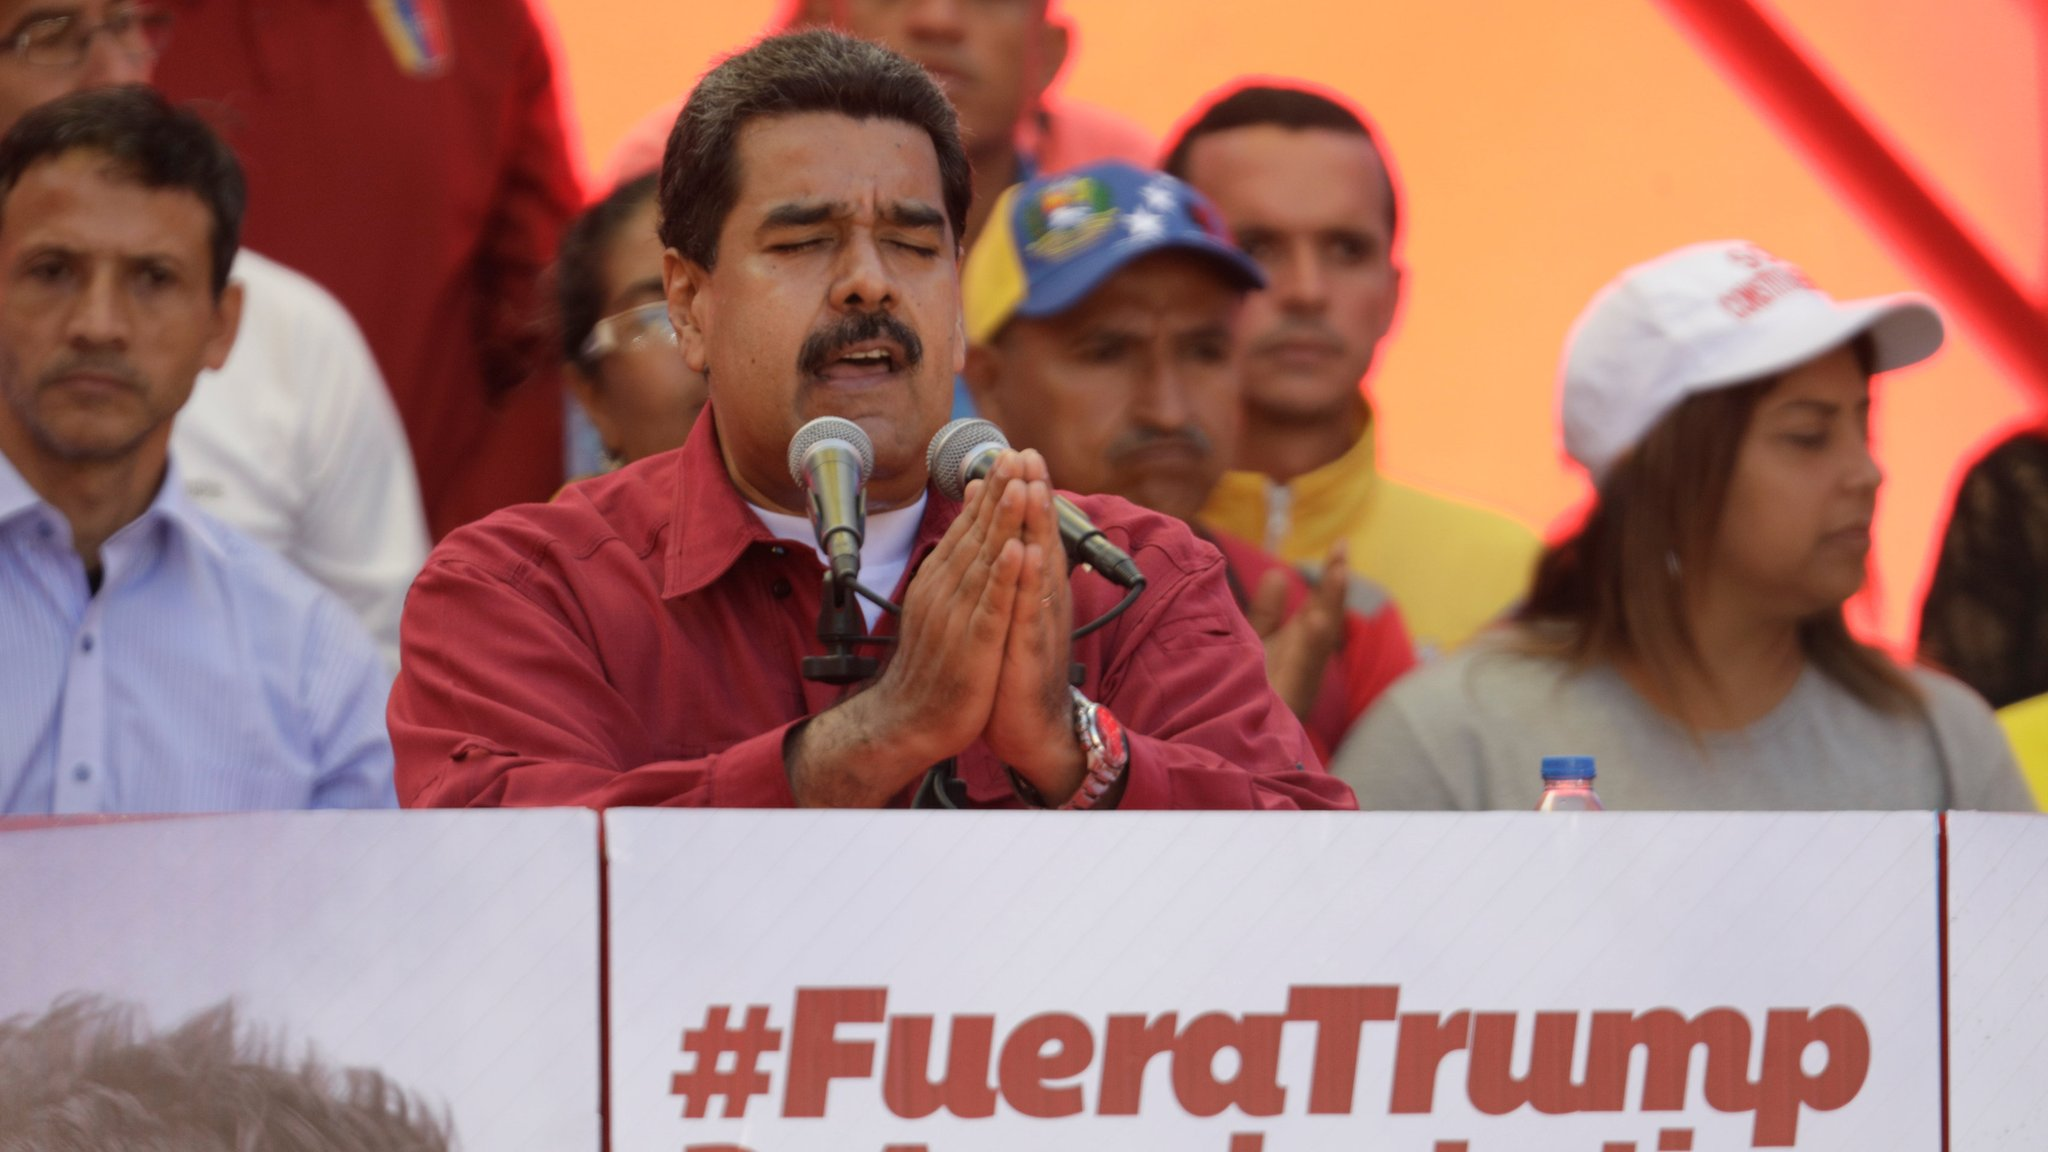 Venezuela's Maduro orders military drill after Trump comments